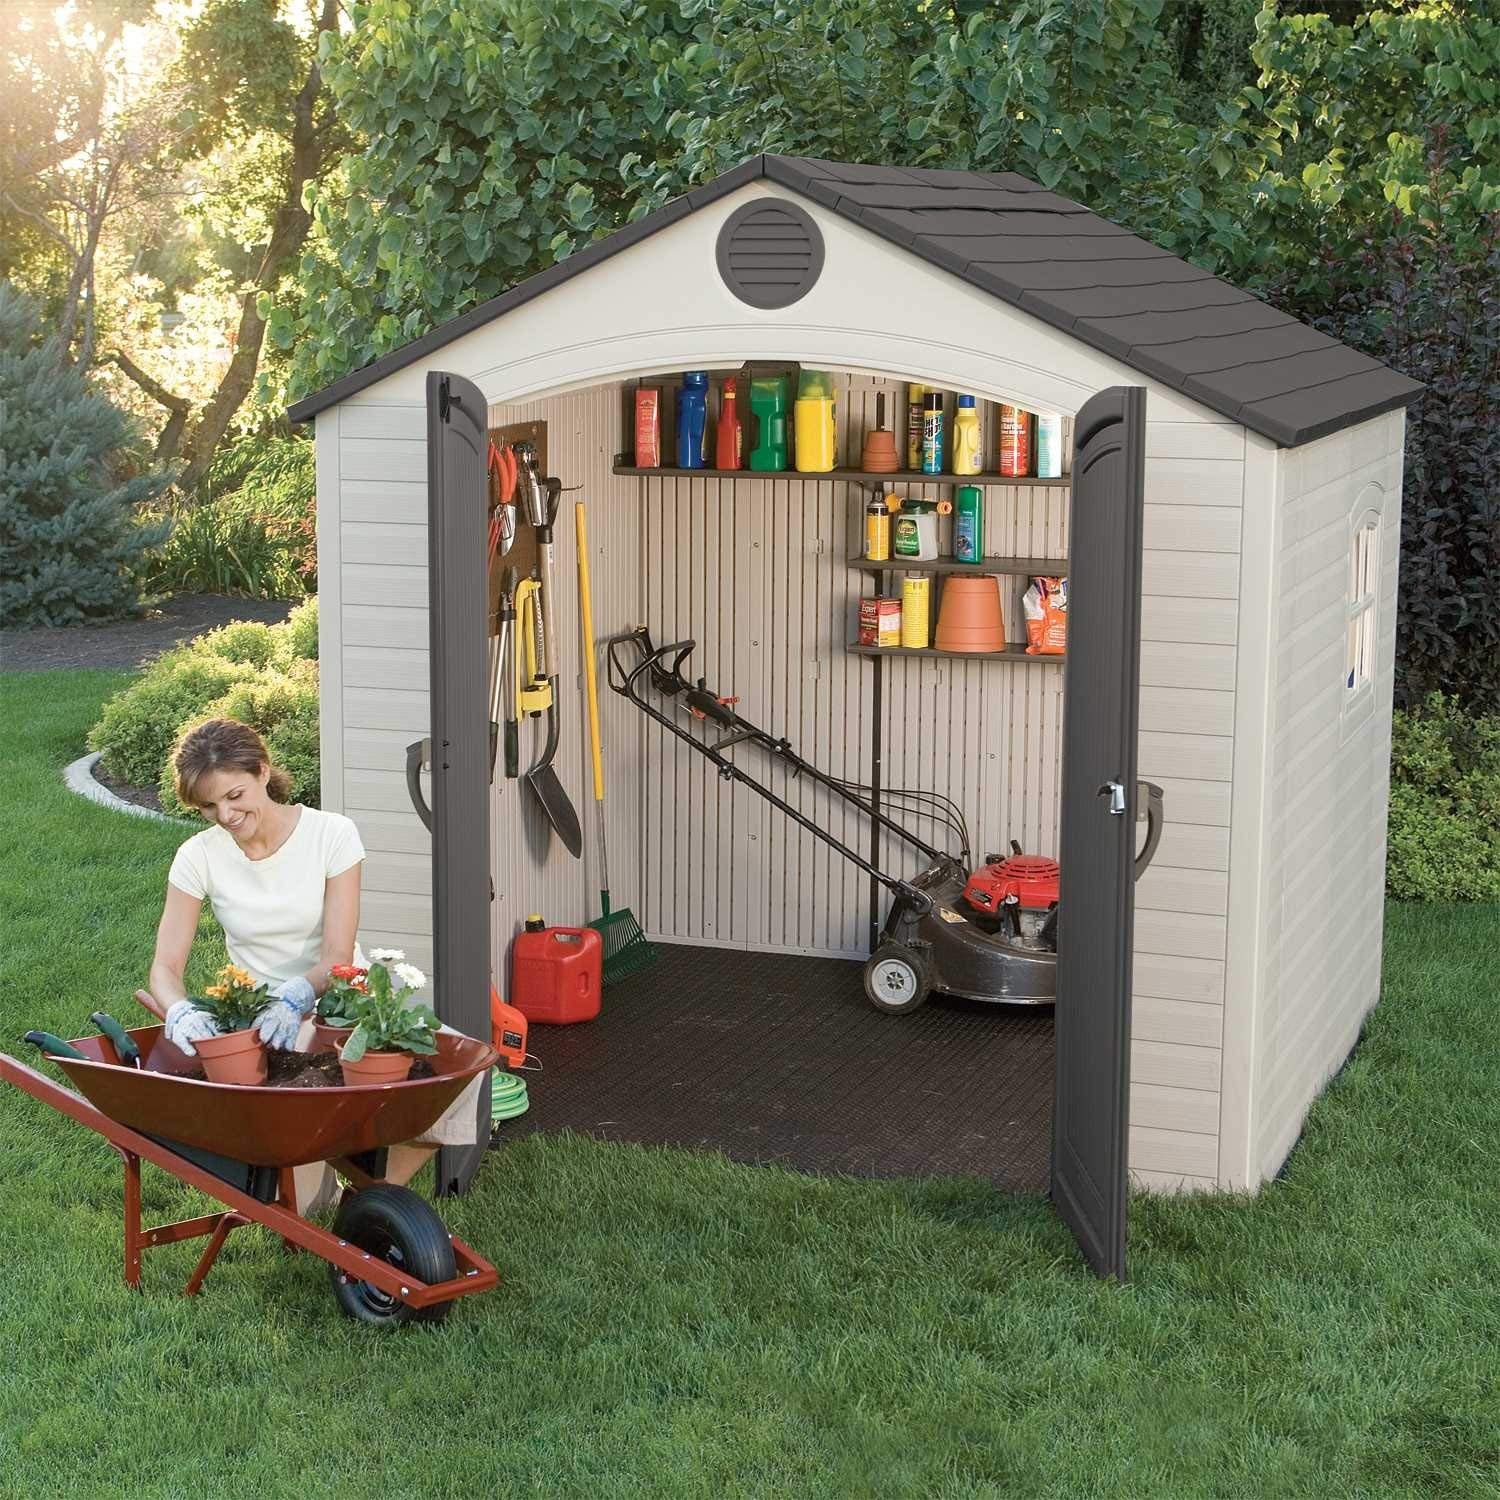 amazon.com : lifetime 6411 outdoor storage shed with window, 8 by KPNQFFR